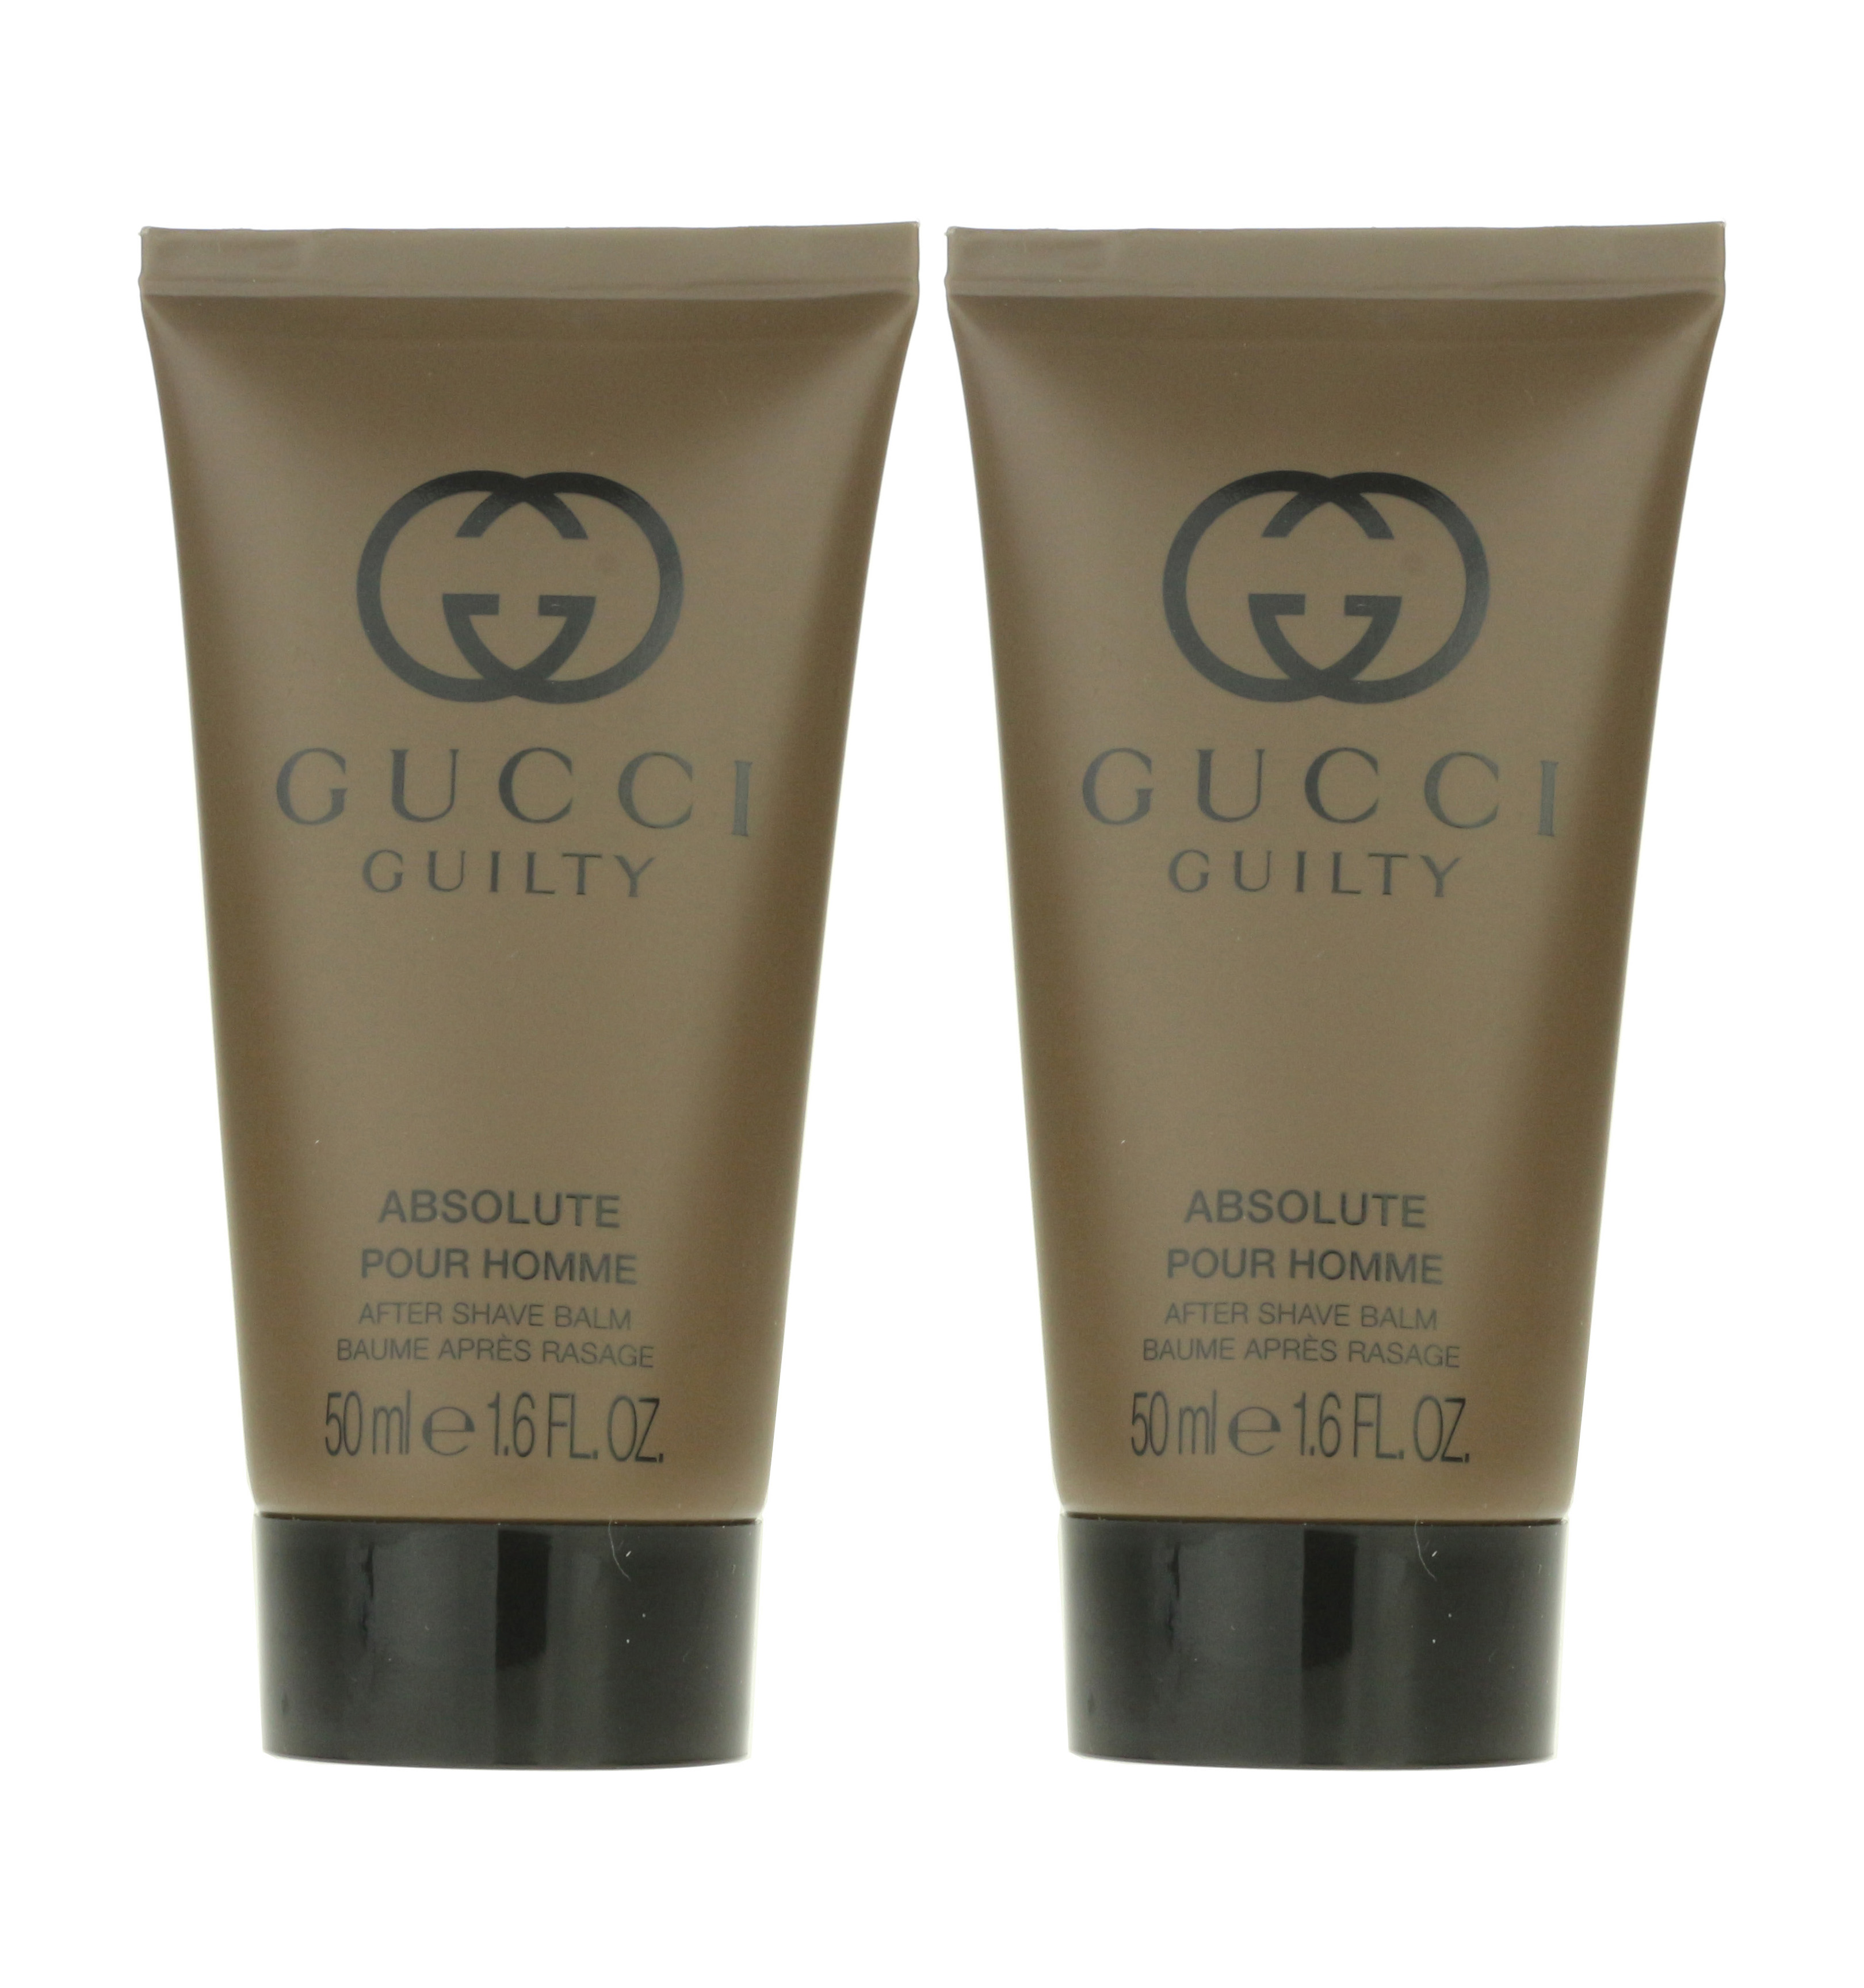 48f44351cbb Details about Gucci Guilty Absolute Pour Homme After Shave Balm 1.6oz 50ml  (Pack Of 2)